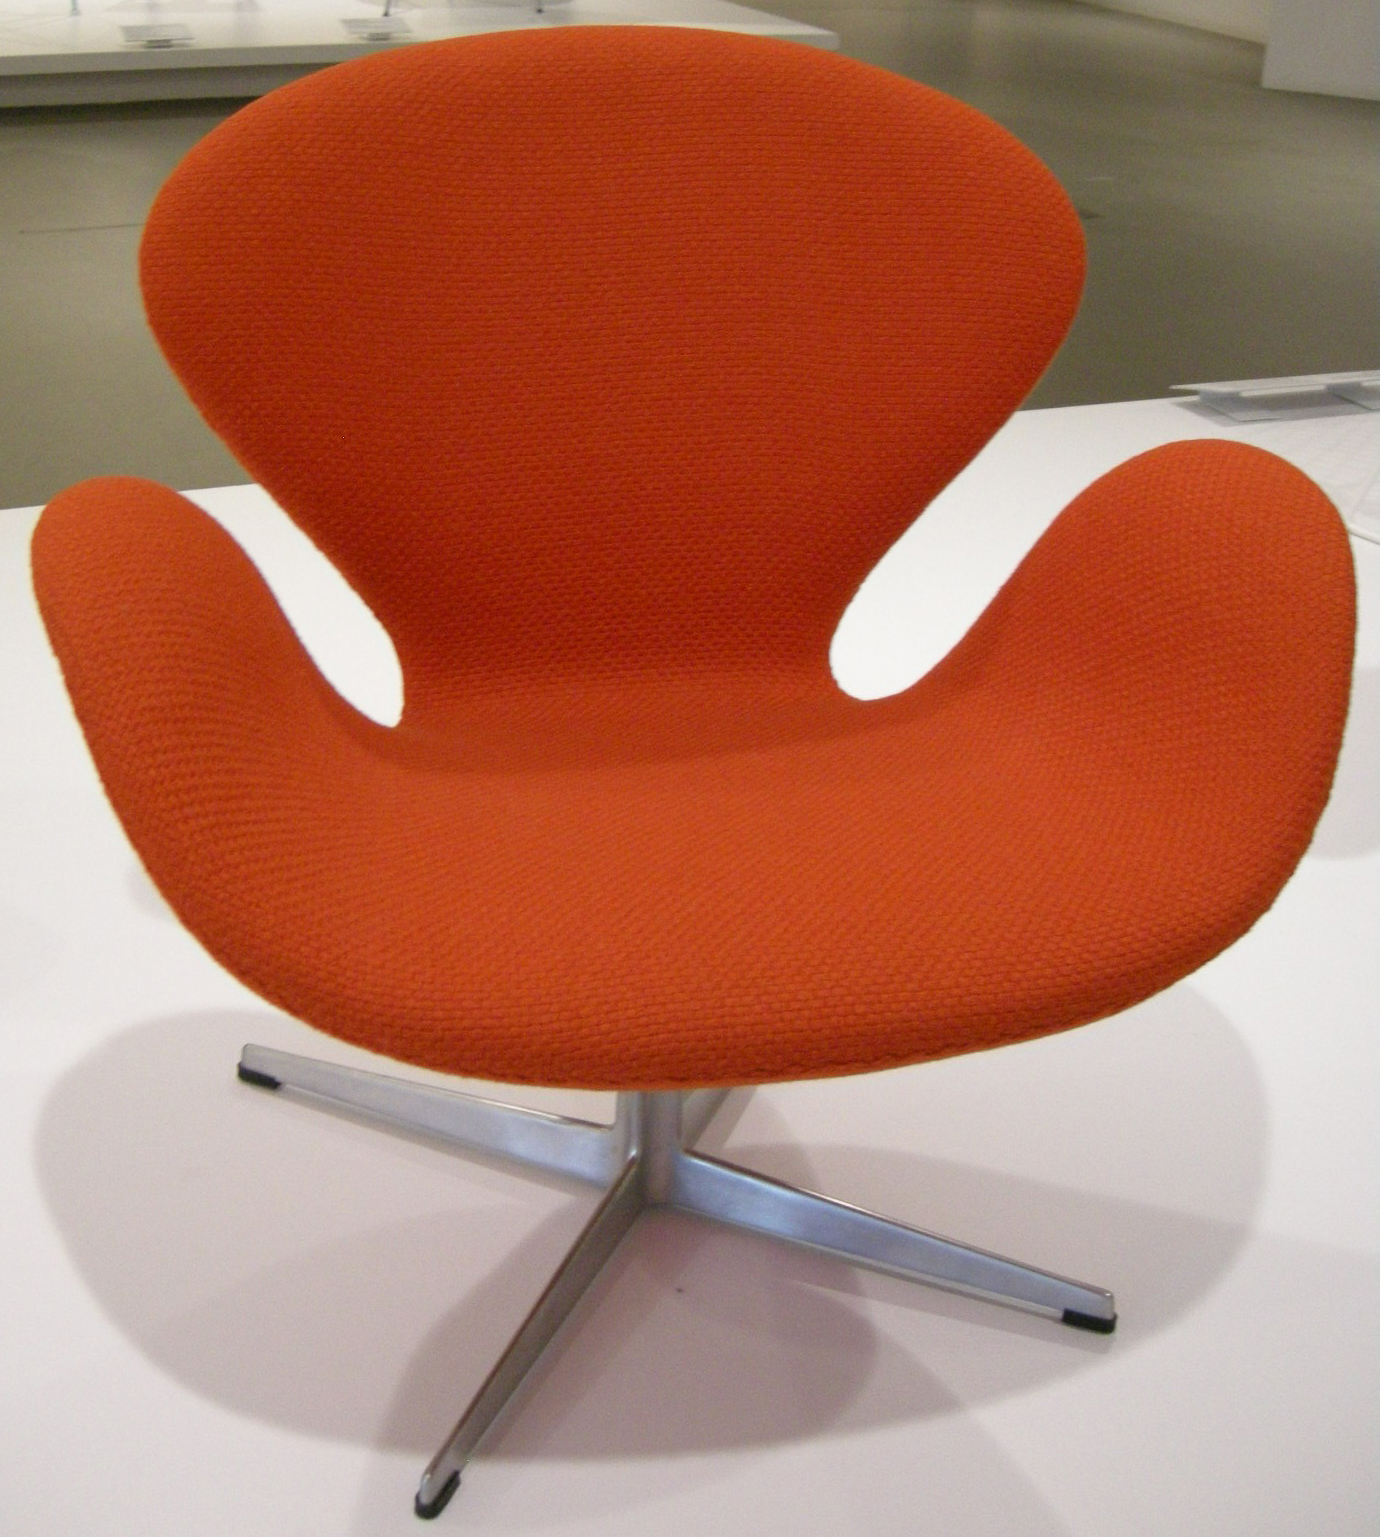 Arne Jacobsen Swan Chair File:ngv Design, Arne Jacobsen, Swan Chair, 1958.jpg ...